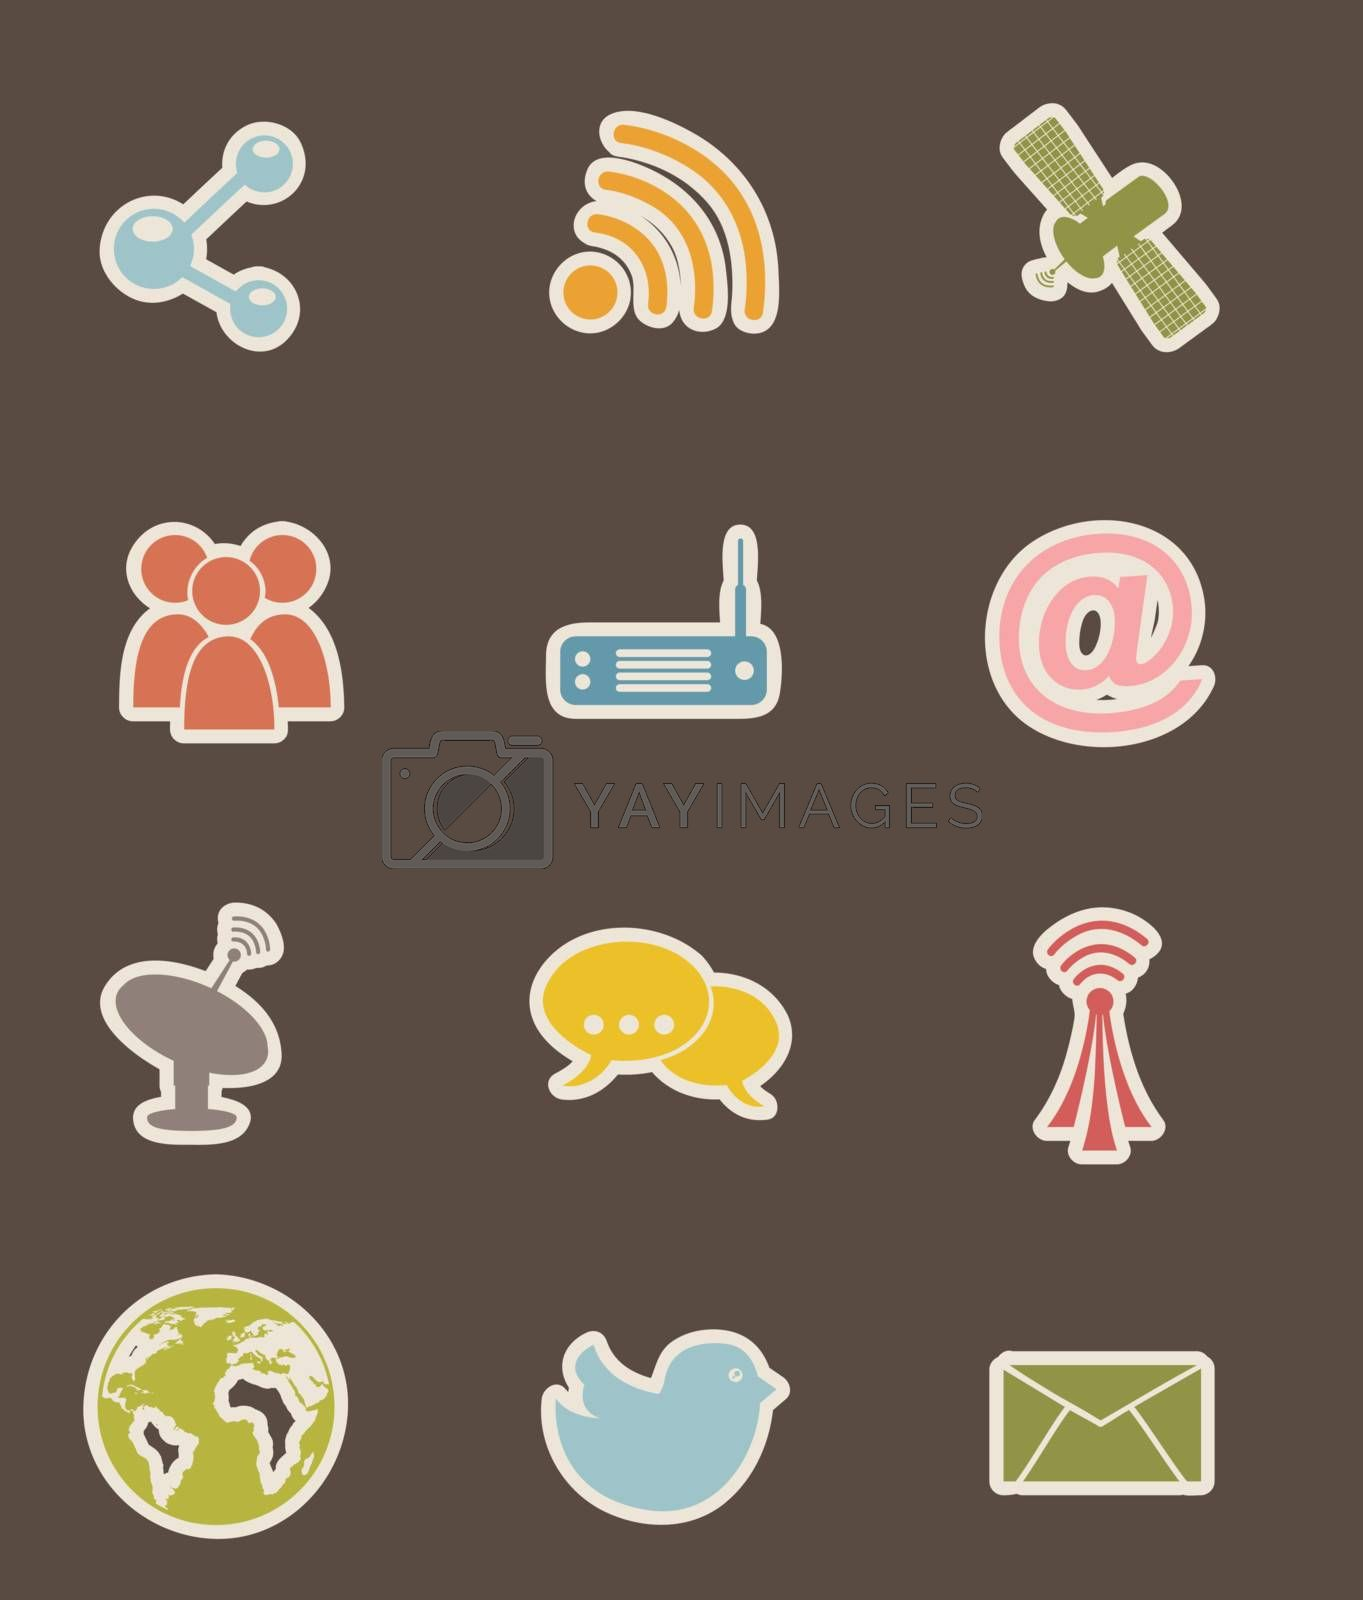 communication icons over brown backgroud. vector illustration